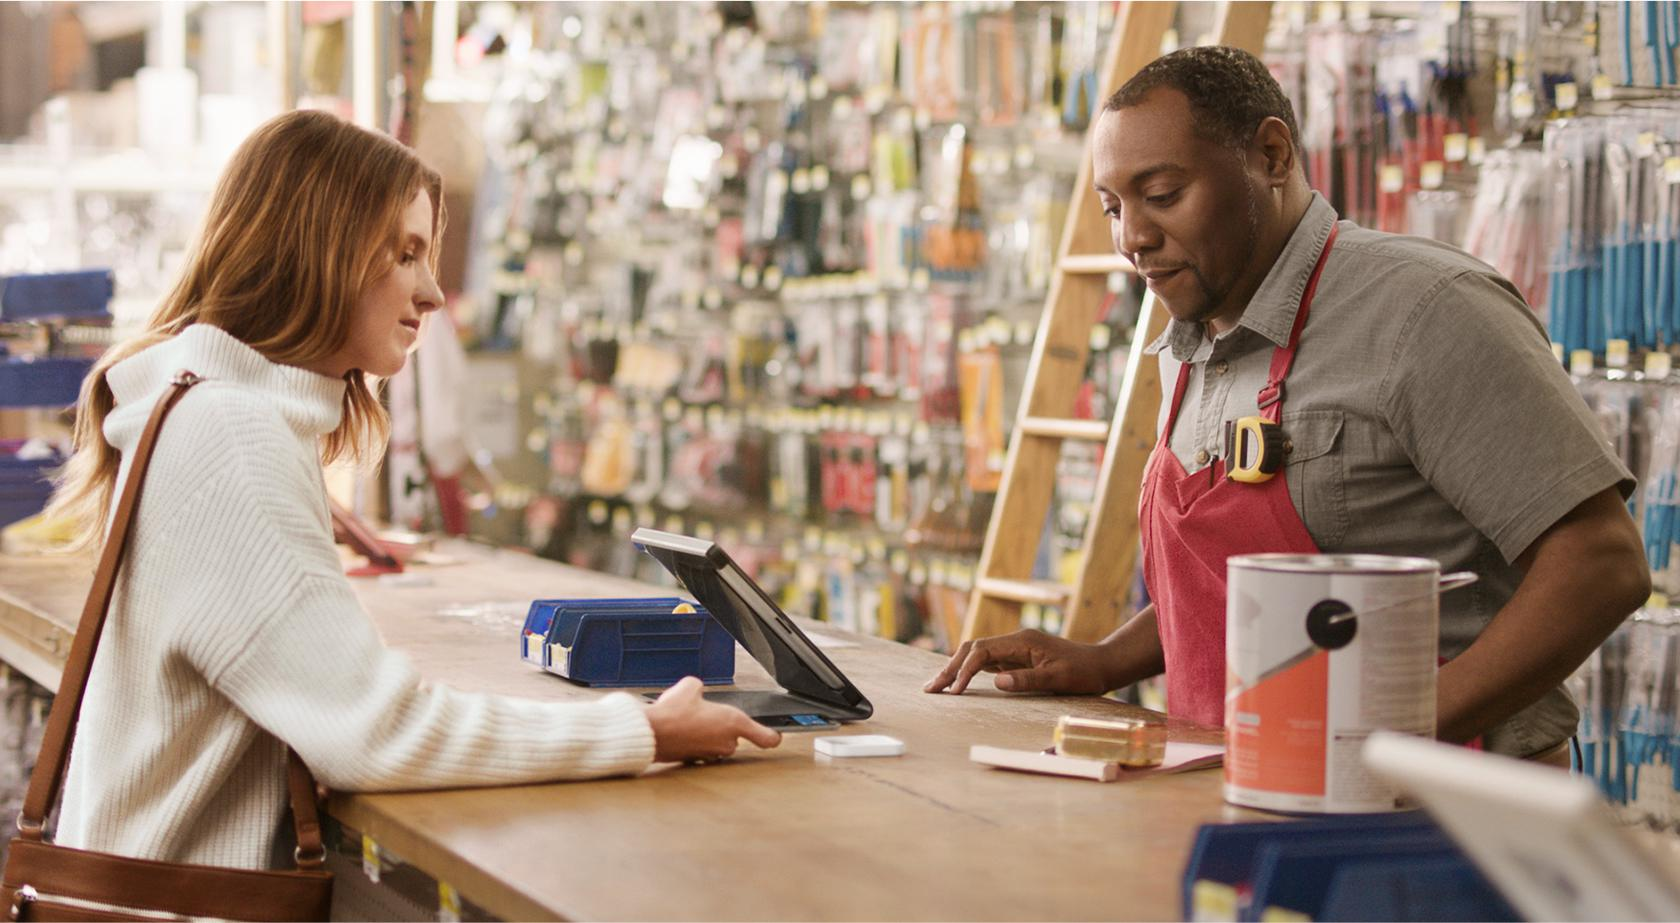 A woman paying with a phone using Apple Pay at the counter of a hardware store